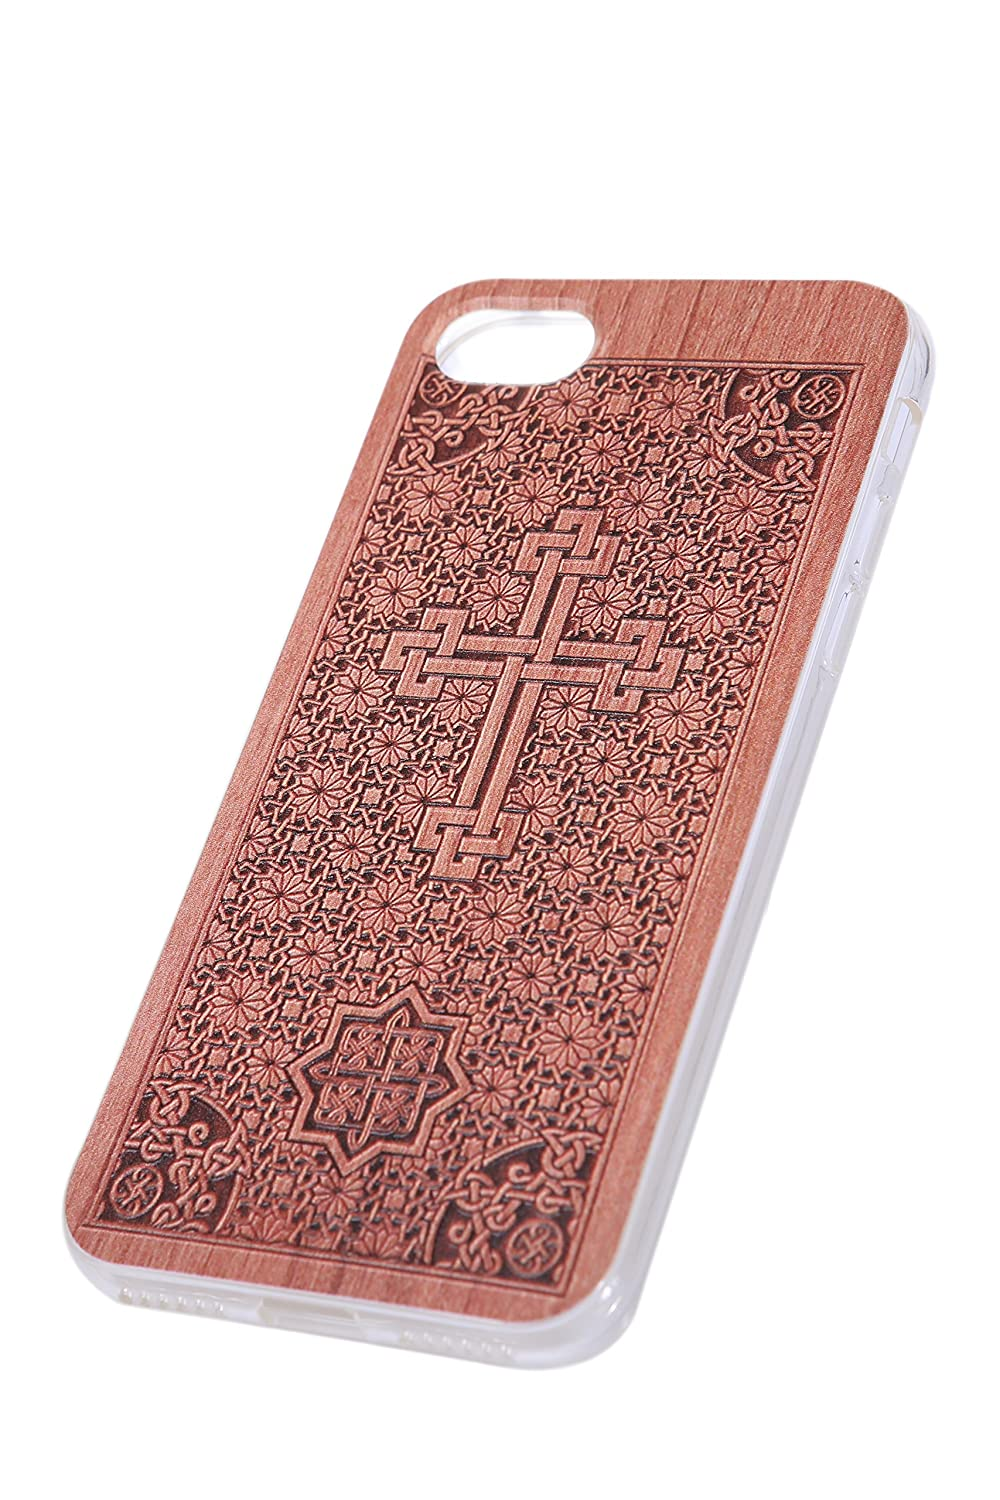 Amazon.com: iPhone case 7 TPU Protective Anti-scratch Cover ...